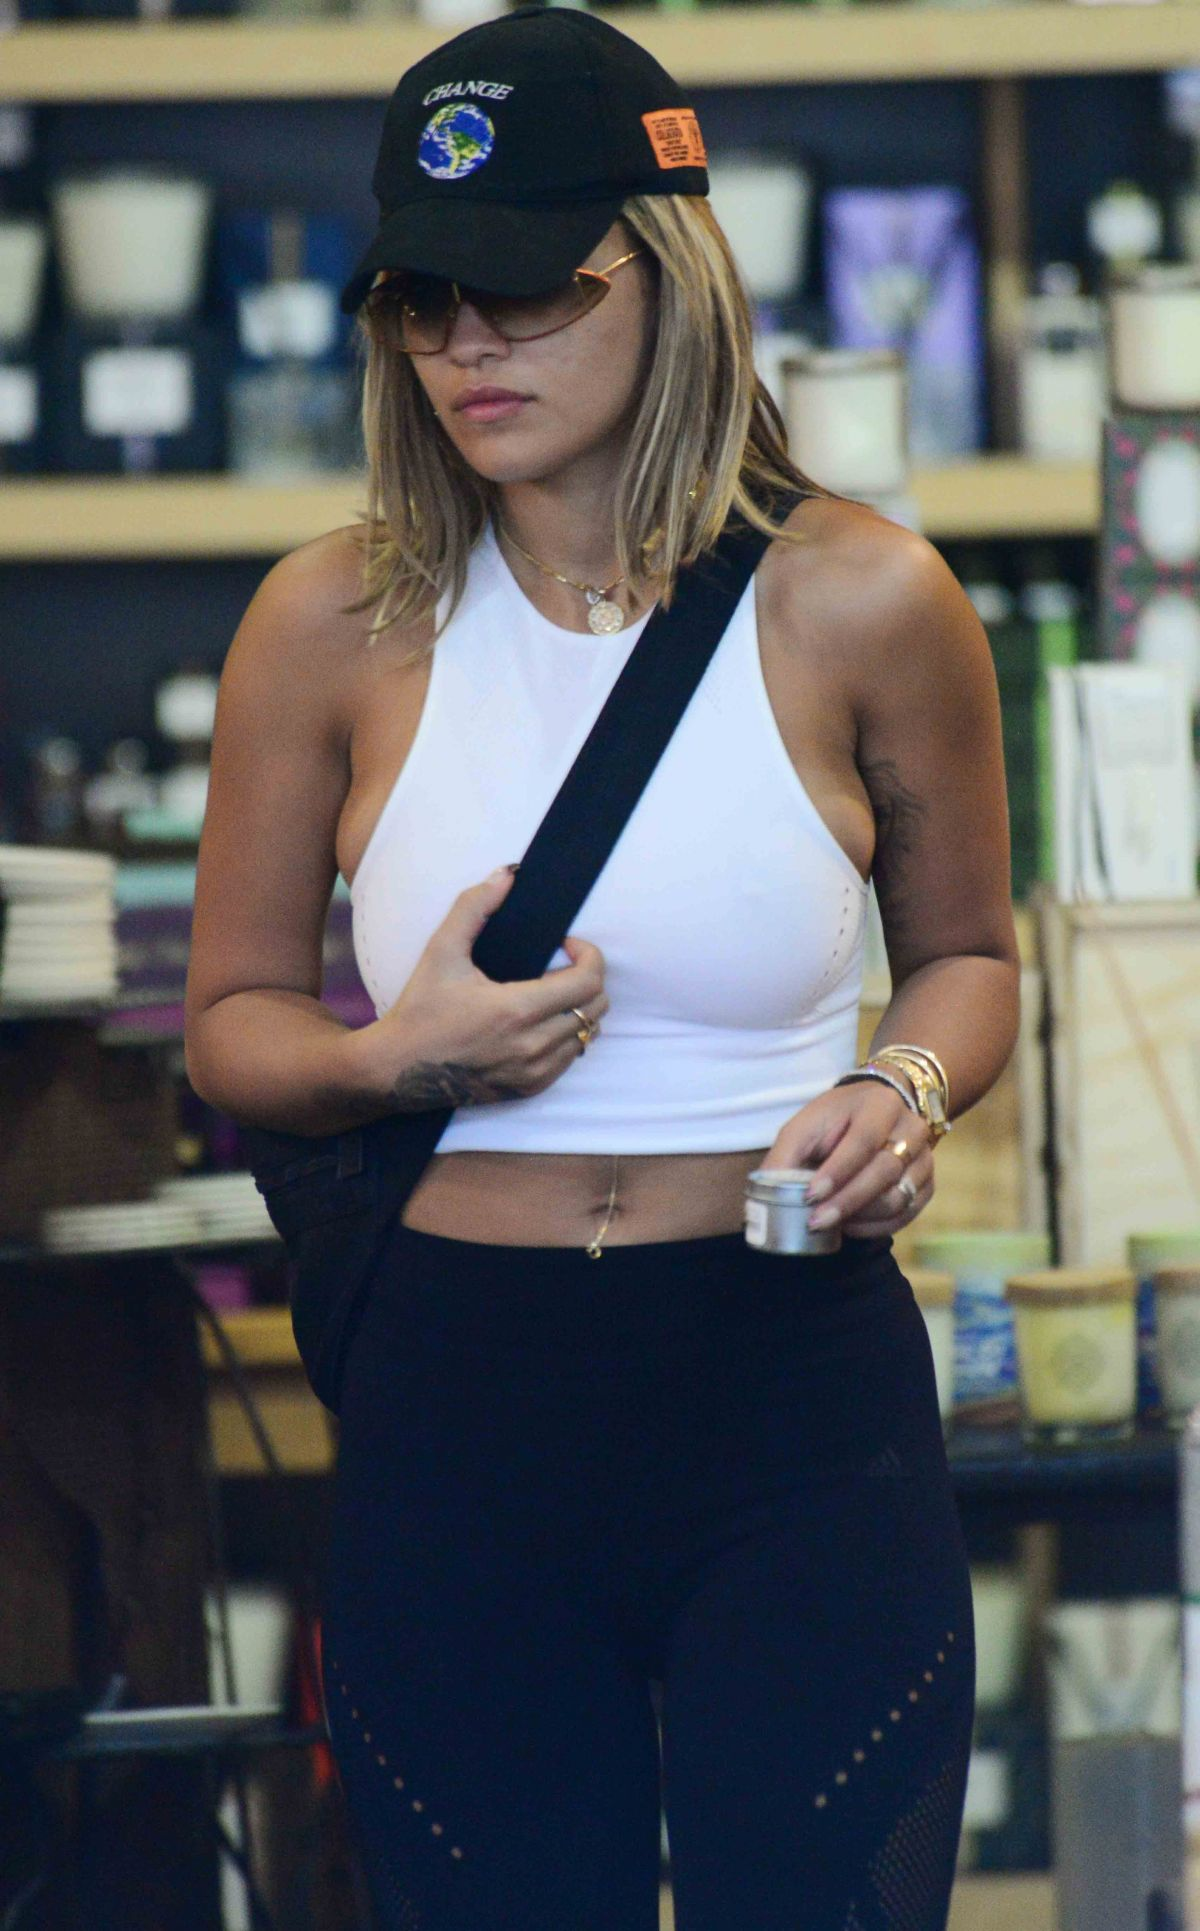 Rita Ora Shopping in West Hollywood   rita-ora-shopping-in-west-hollywood_18